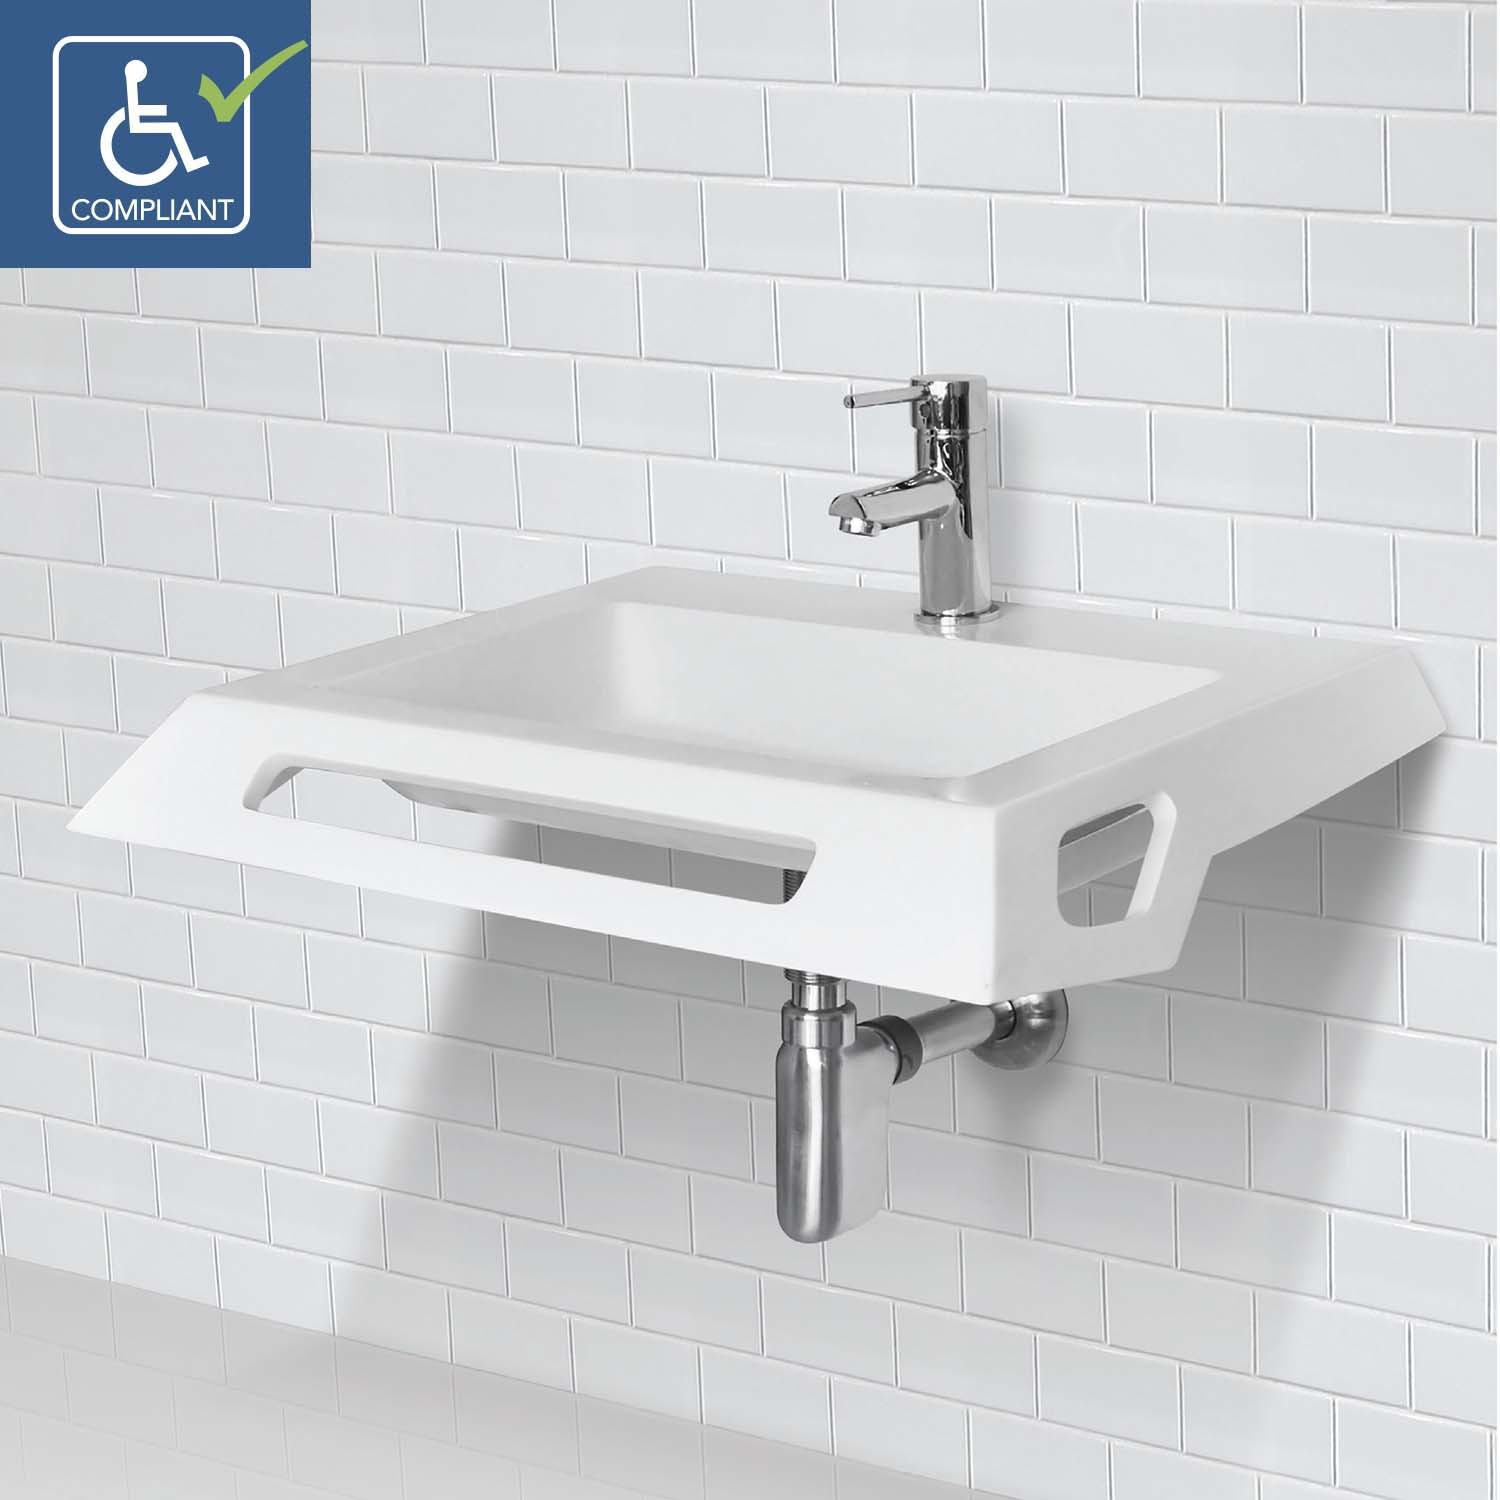 Modern Decolav Lexine 1833-Ssa - Solid Surface Ada Compliant Wall-Mount with Ada Bathroom Sink